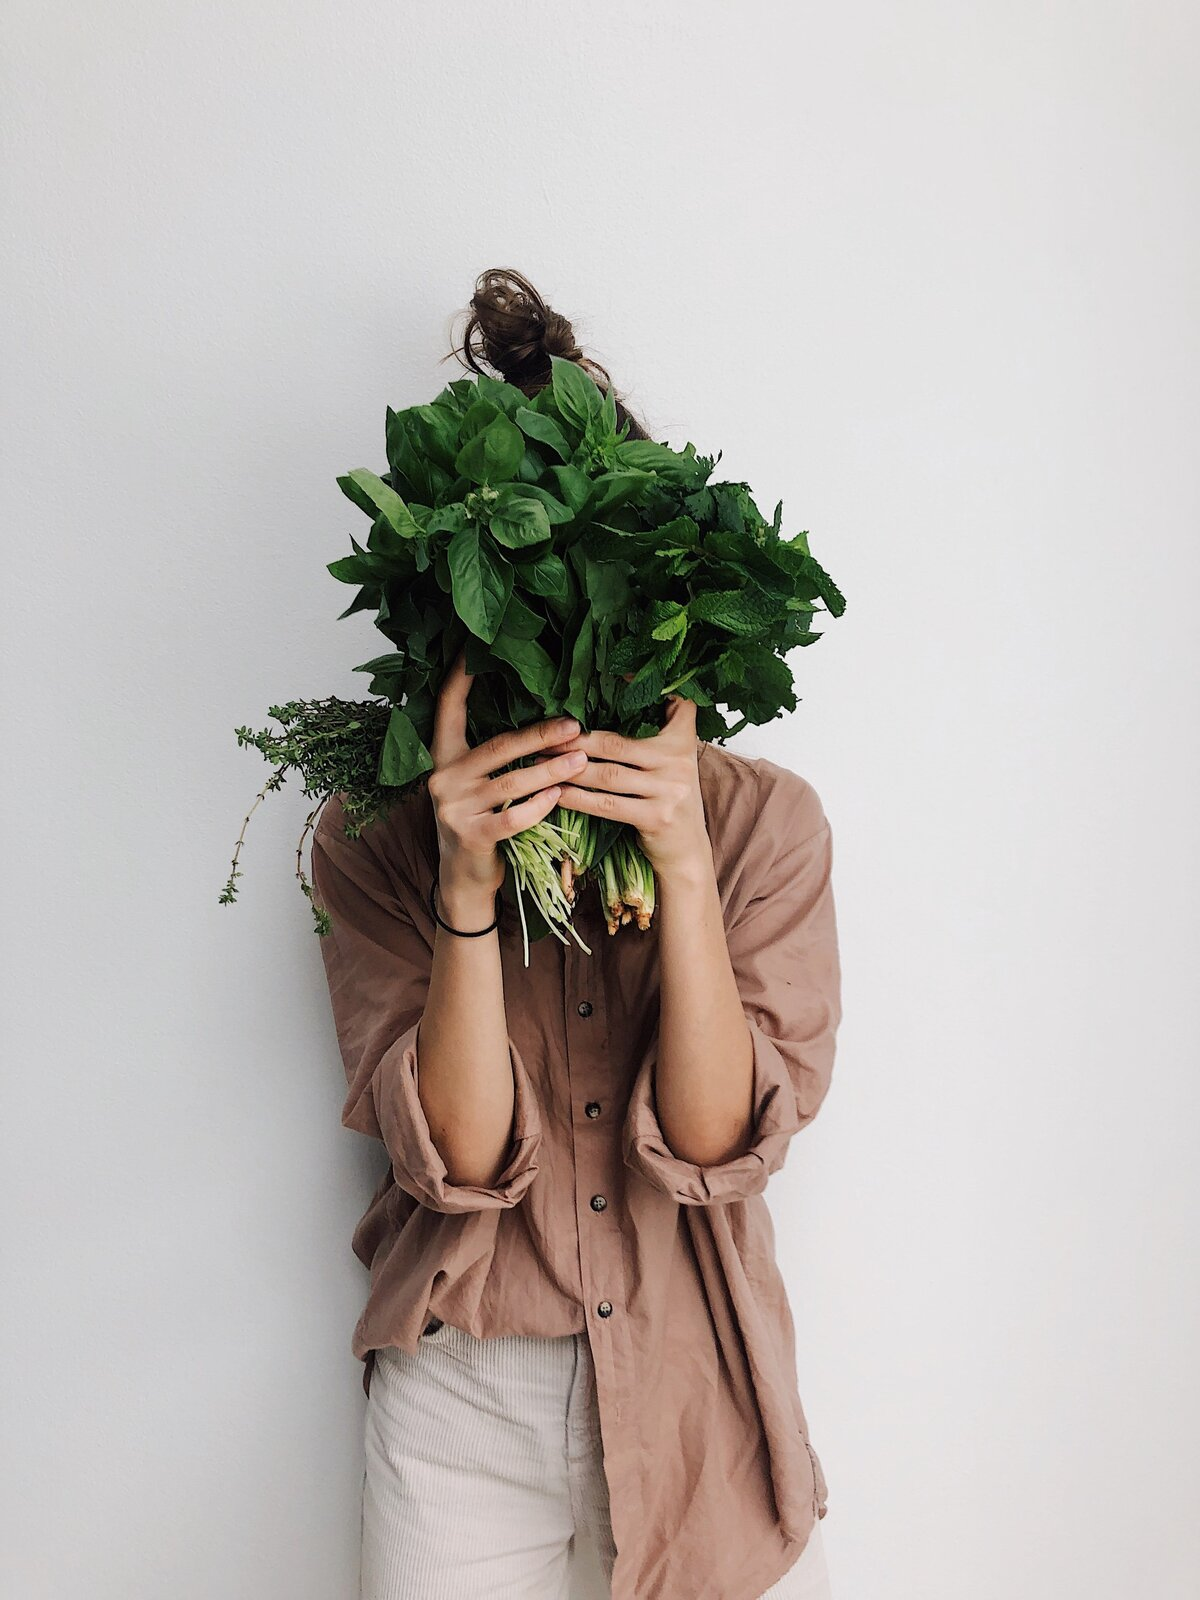 person-holding-green-vegetables-3629537